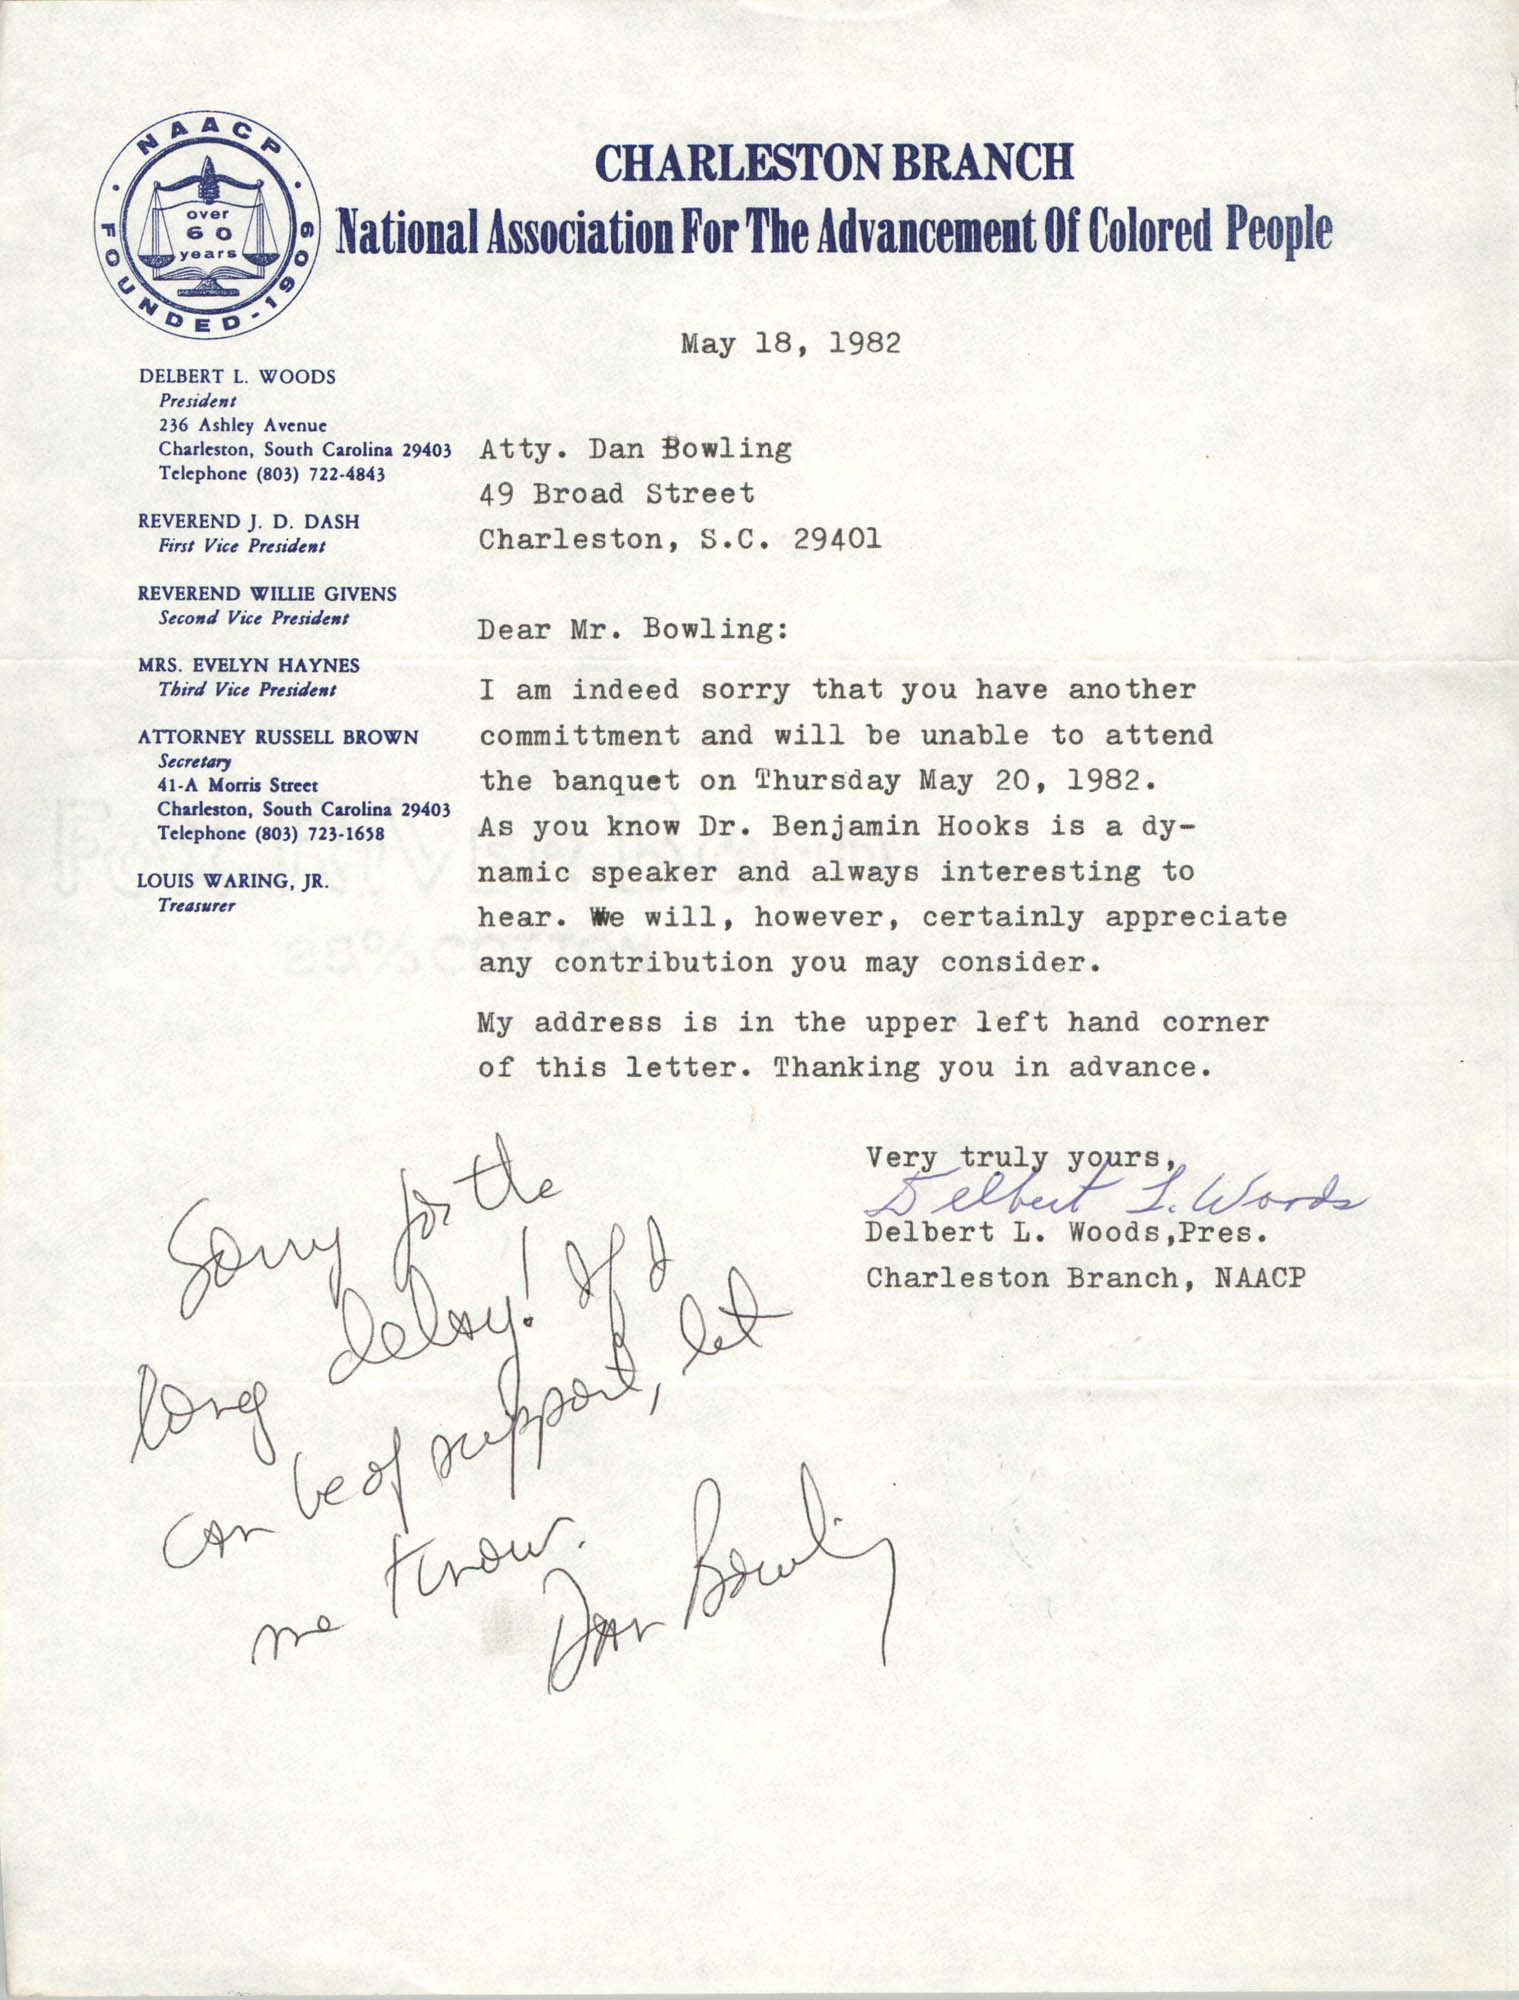 NAACP Memorandum, May 18, 1982